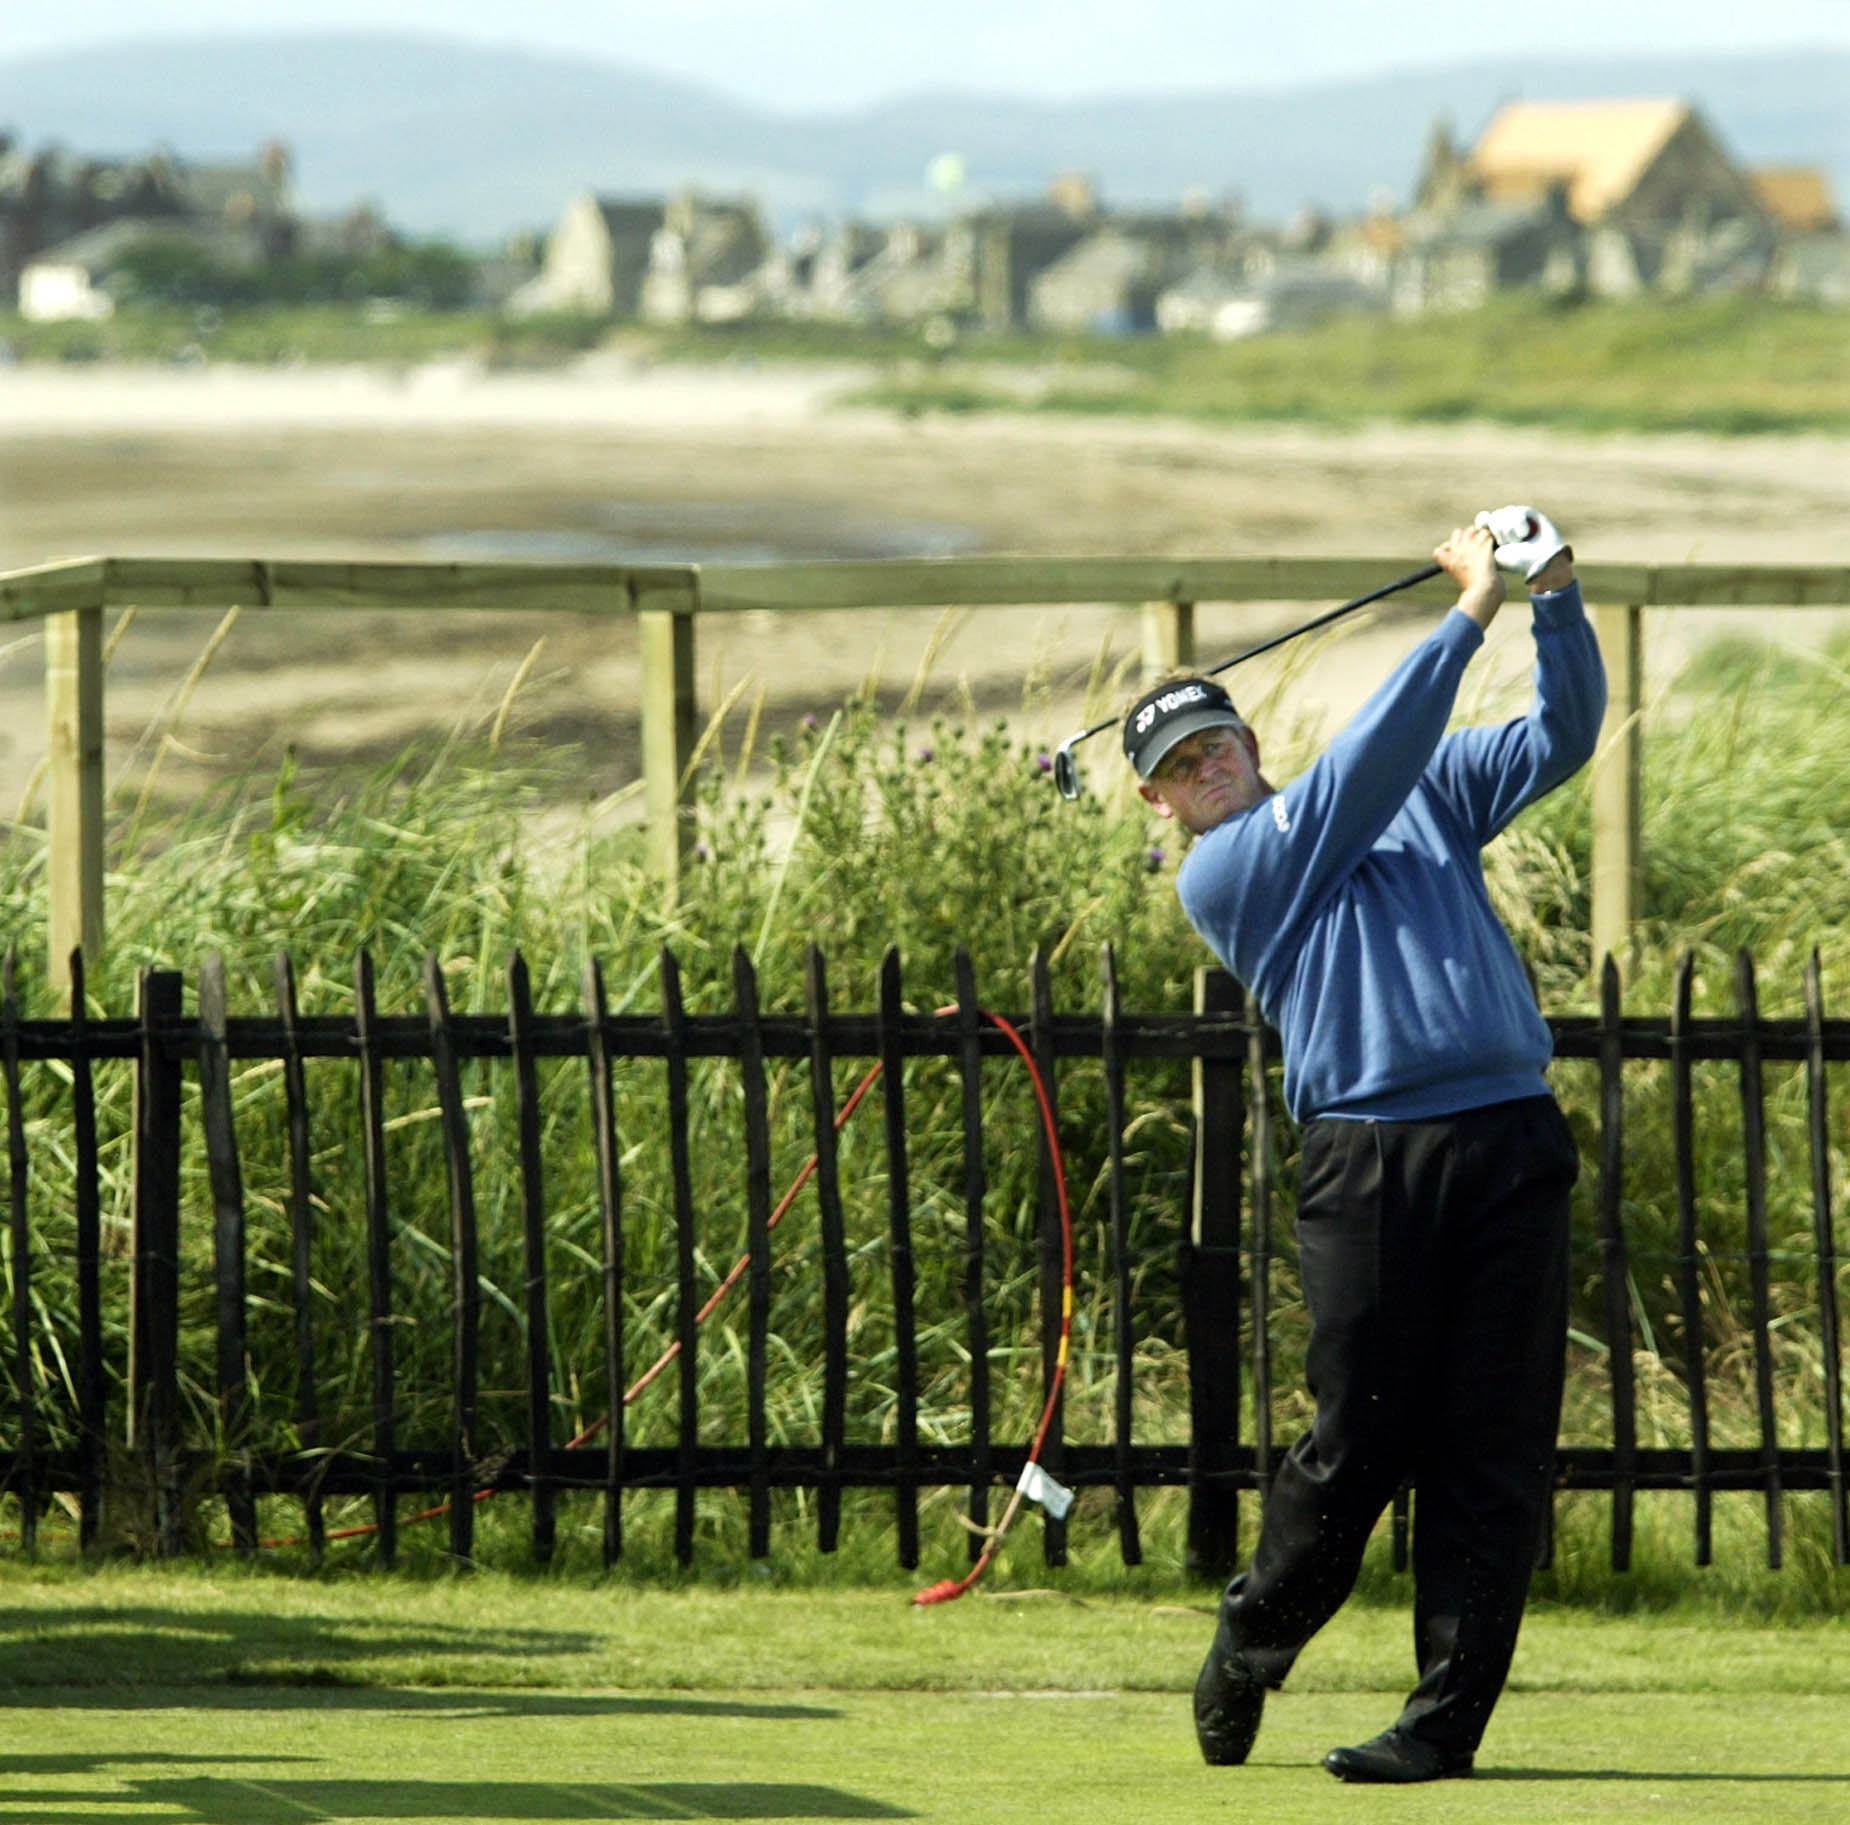 Scotland's Colin Montgomerie tees off on the second tee Monday, July 12, 2004 during a practice round for the upcoming British Open at Royal Troon golf course in Troon, Scotland. The course is Montgomery's home course, and his father once served as club s